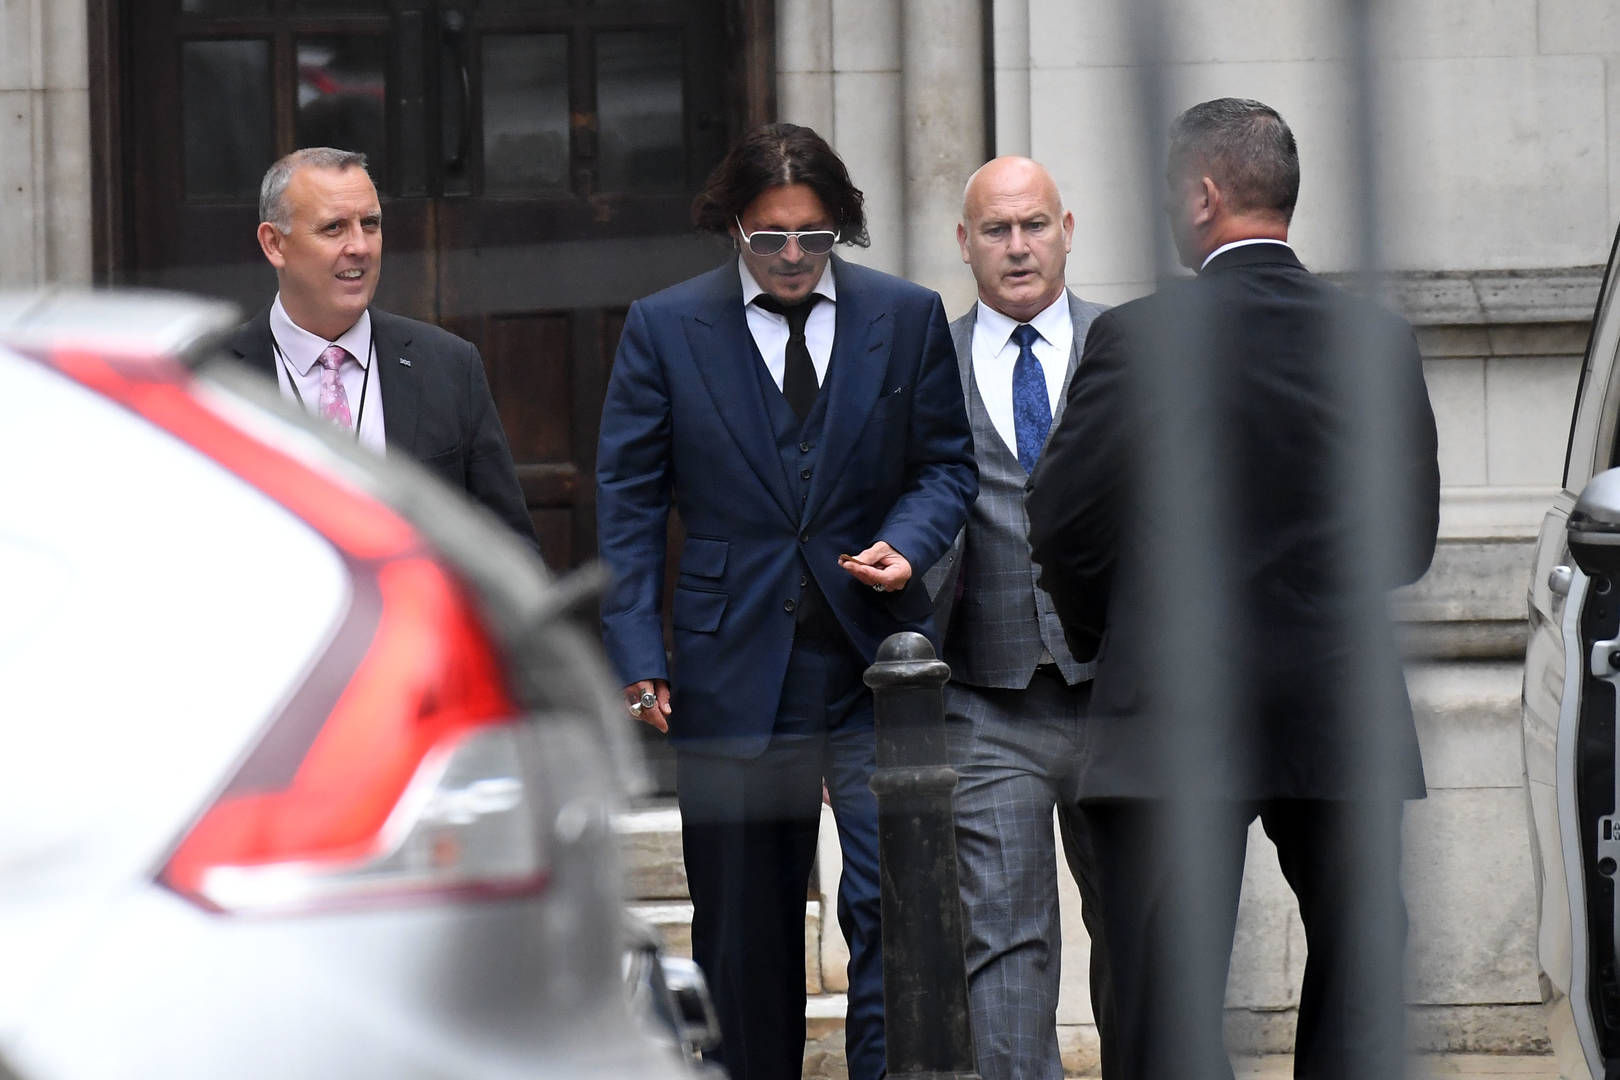 Johnny Depp seen lying bloodied with a mutilated finger in resurfaced photos